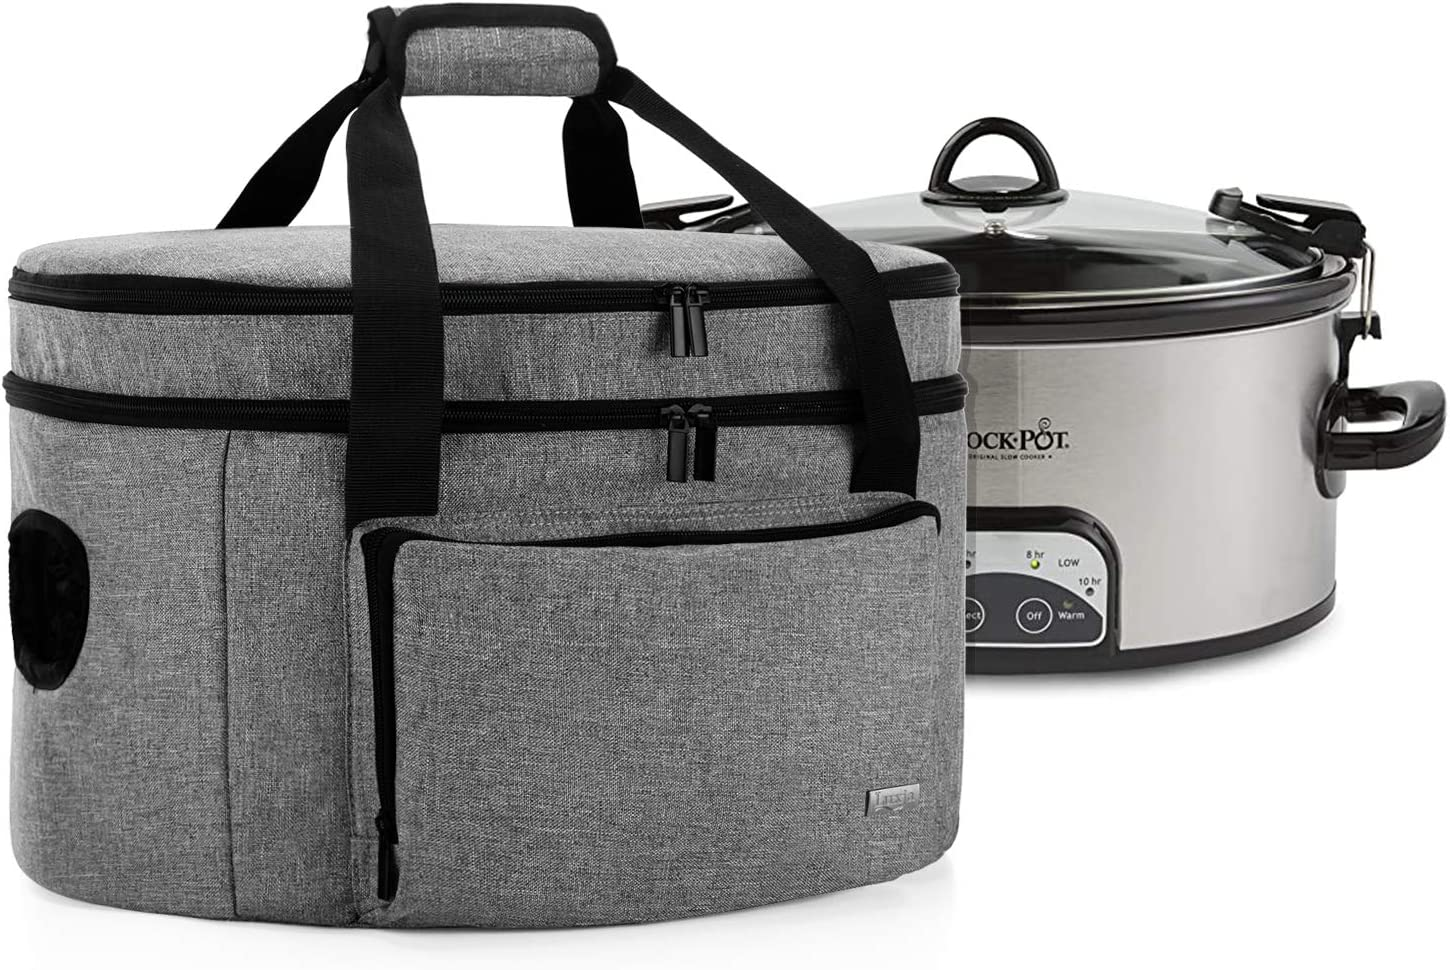 Luxja Double Layers Slow Cooker Bag (with a Bottom Pad and Lid Fasten Straps), Insulated Slow Cooker Carrier Fits for Most 6-8 Quart Oval Slow Cooker, Gray (Bag Only)